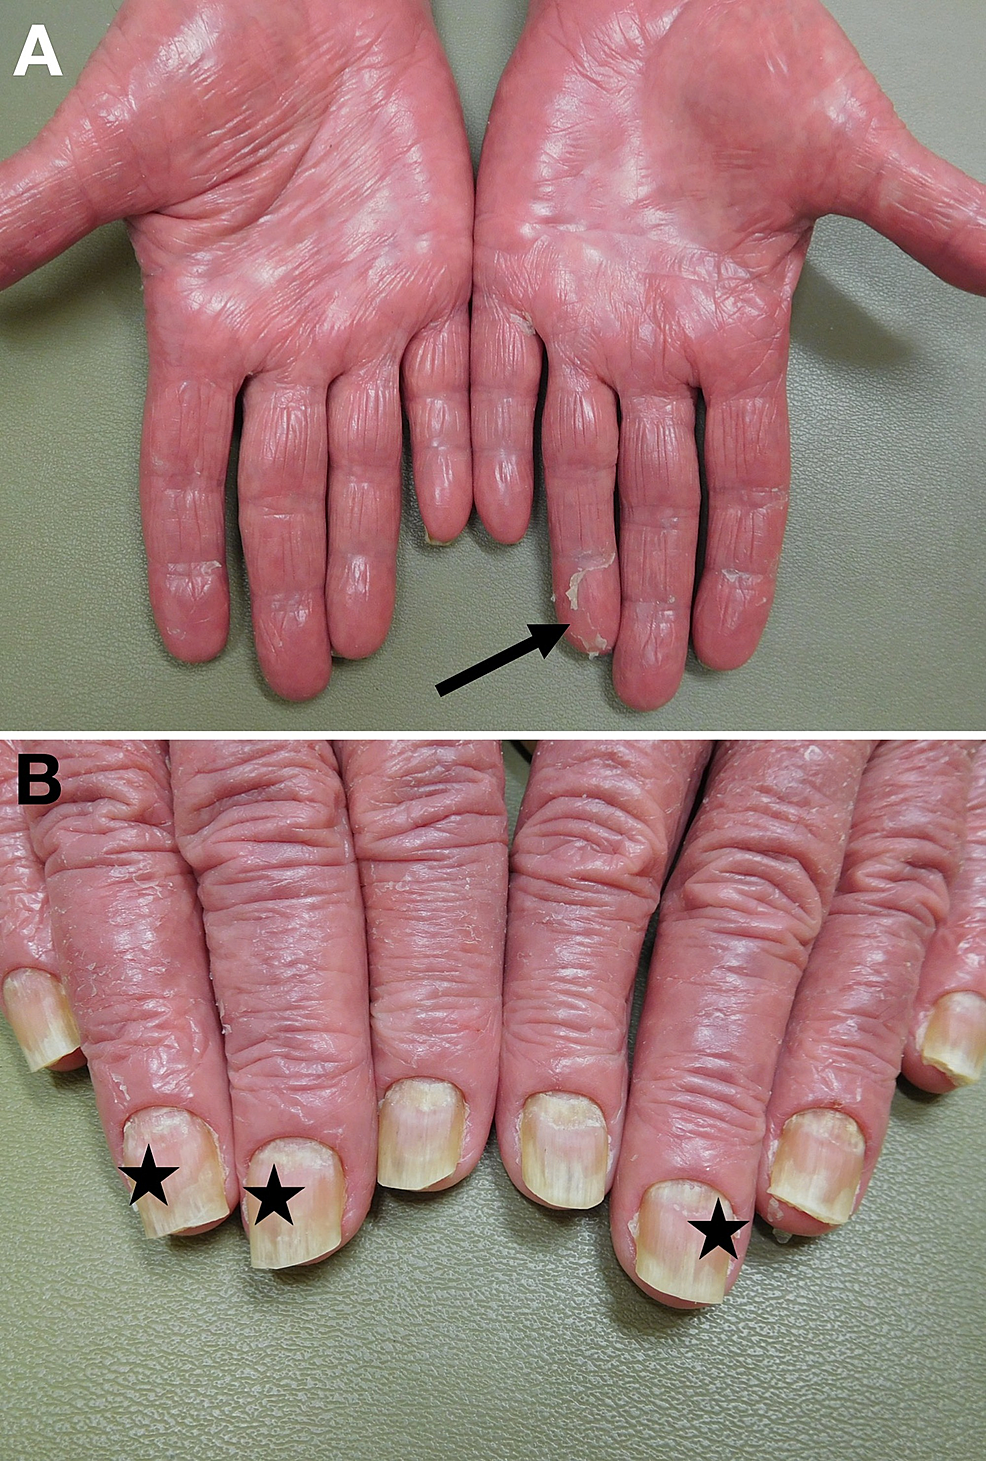 Erythrodermic-psoriasis-of-the-palms-and-fingernails